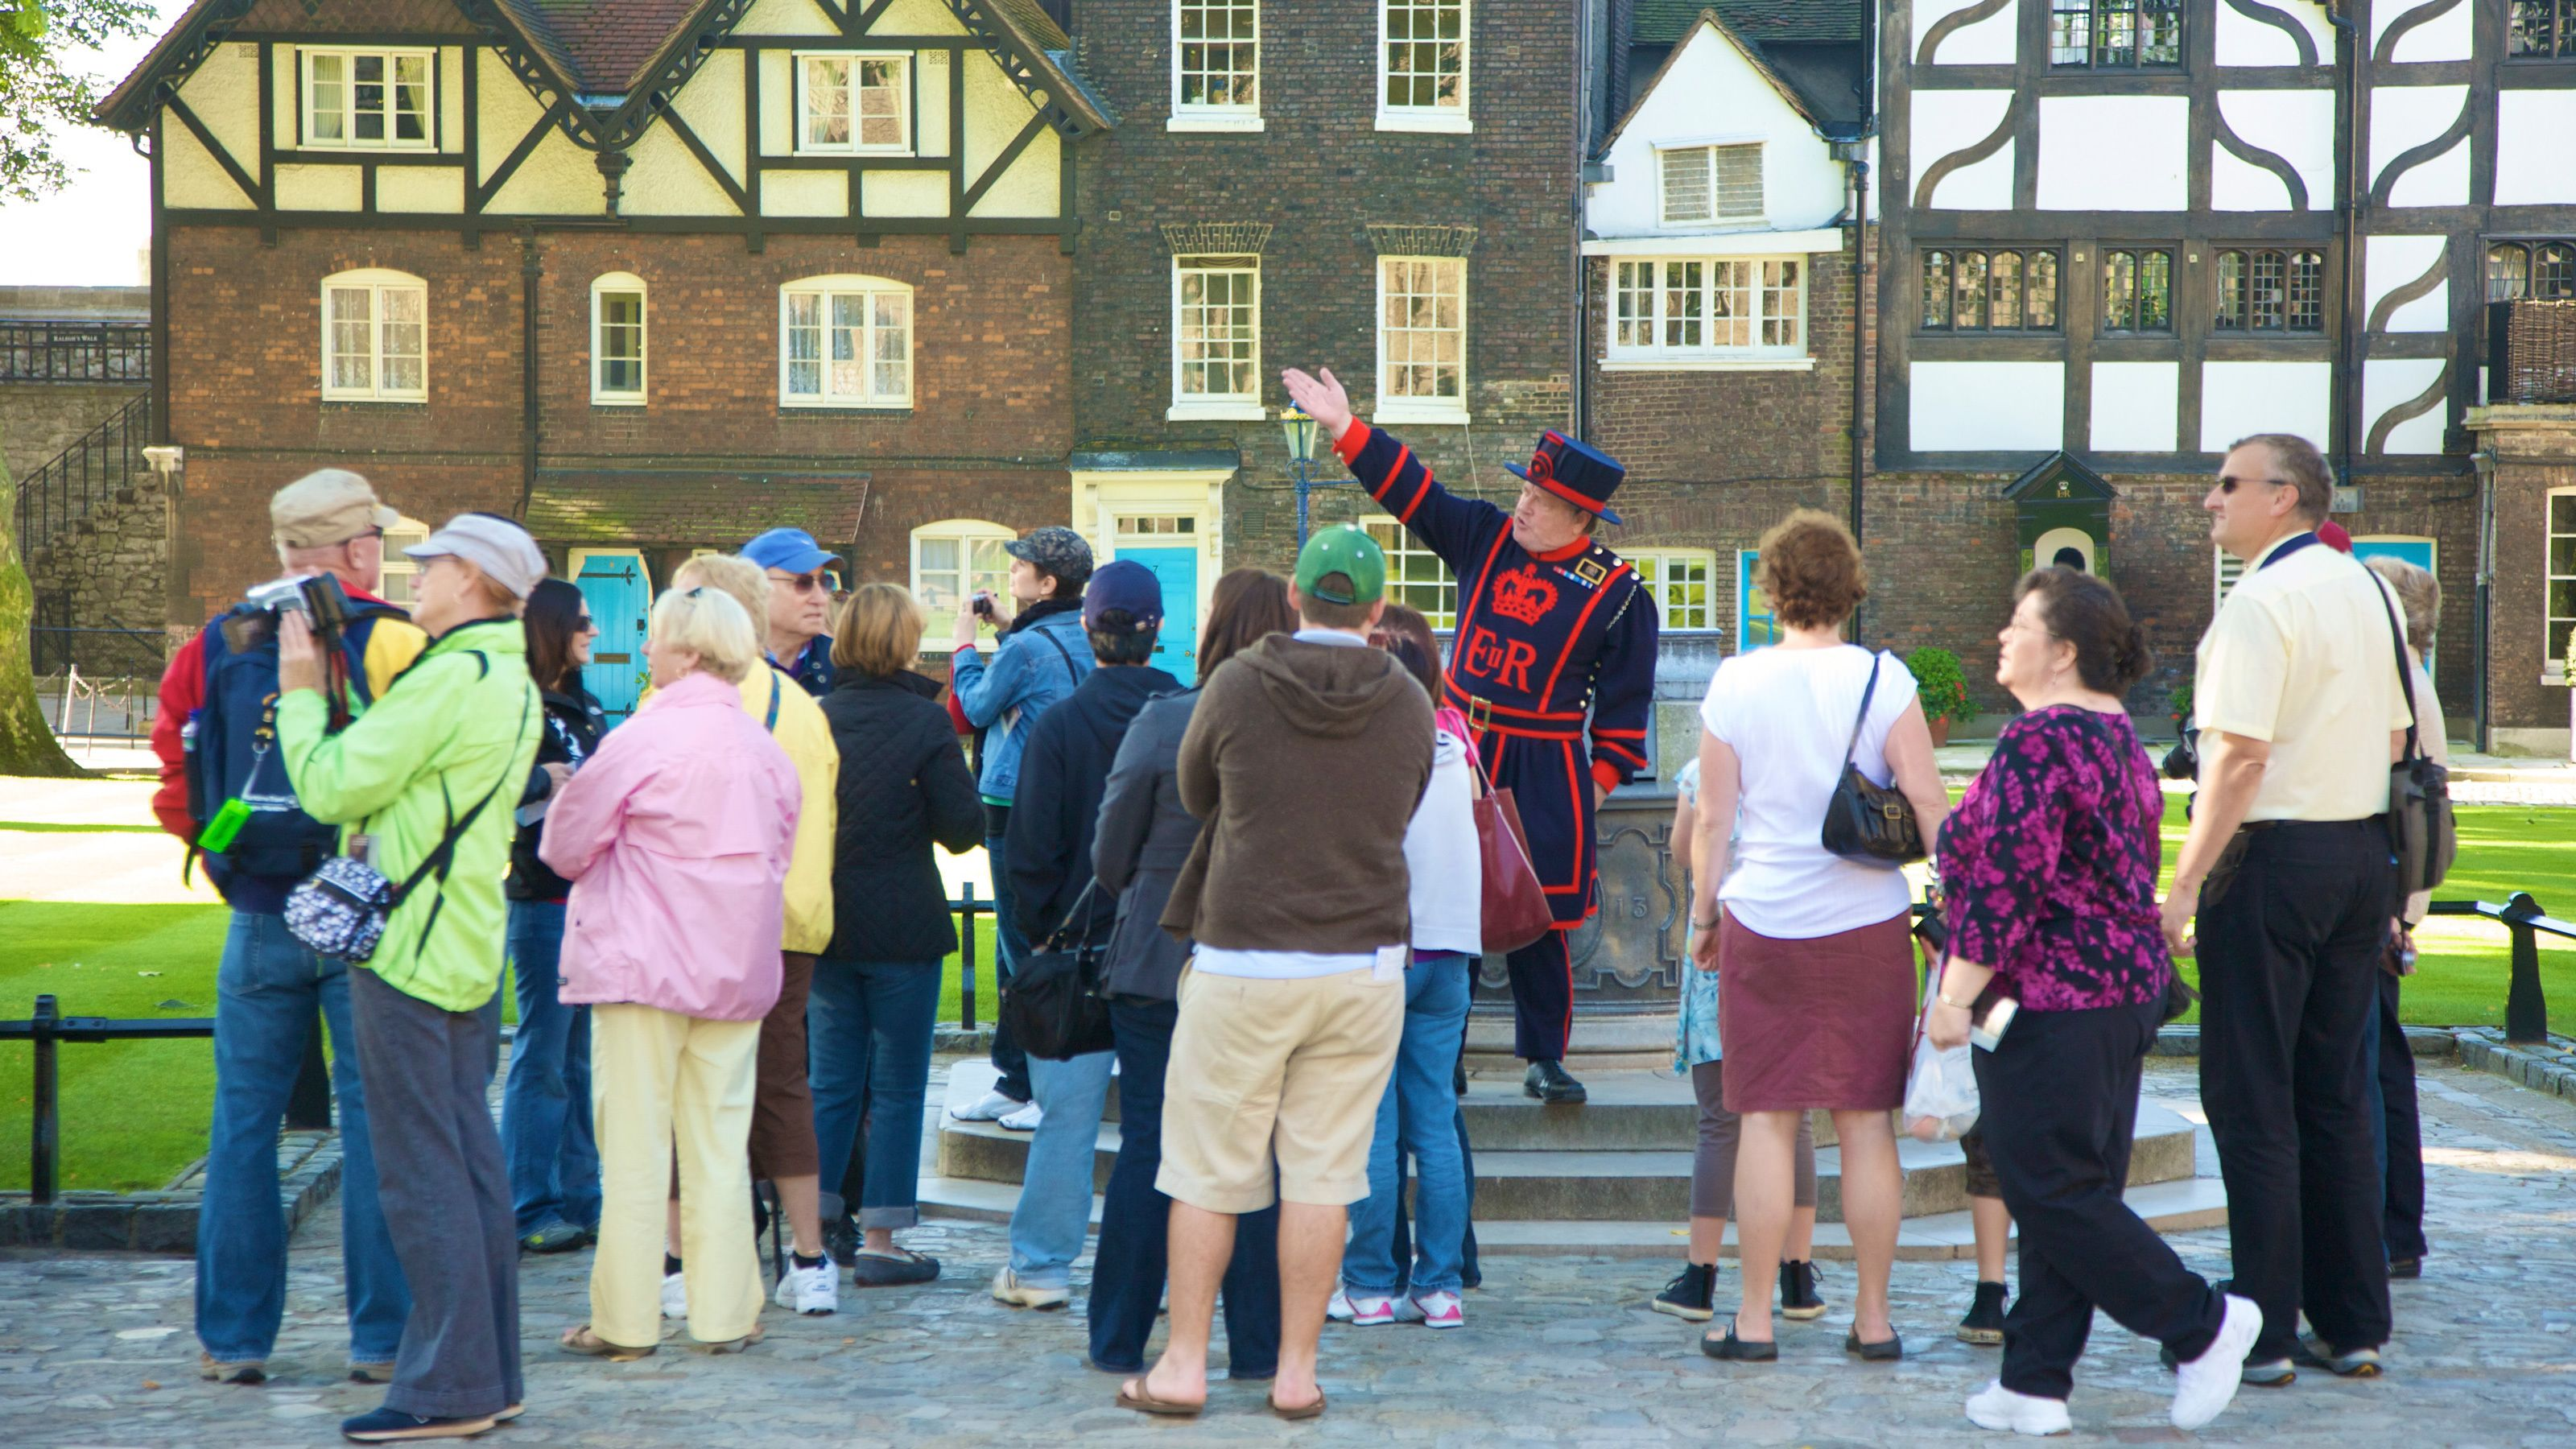 beefeater tour guide directs visitors attention to the left at Tower of London